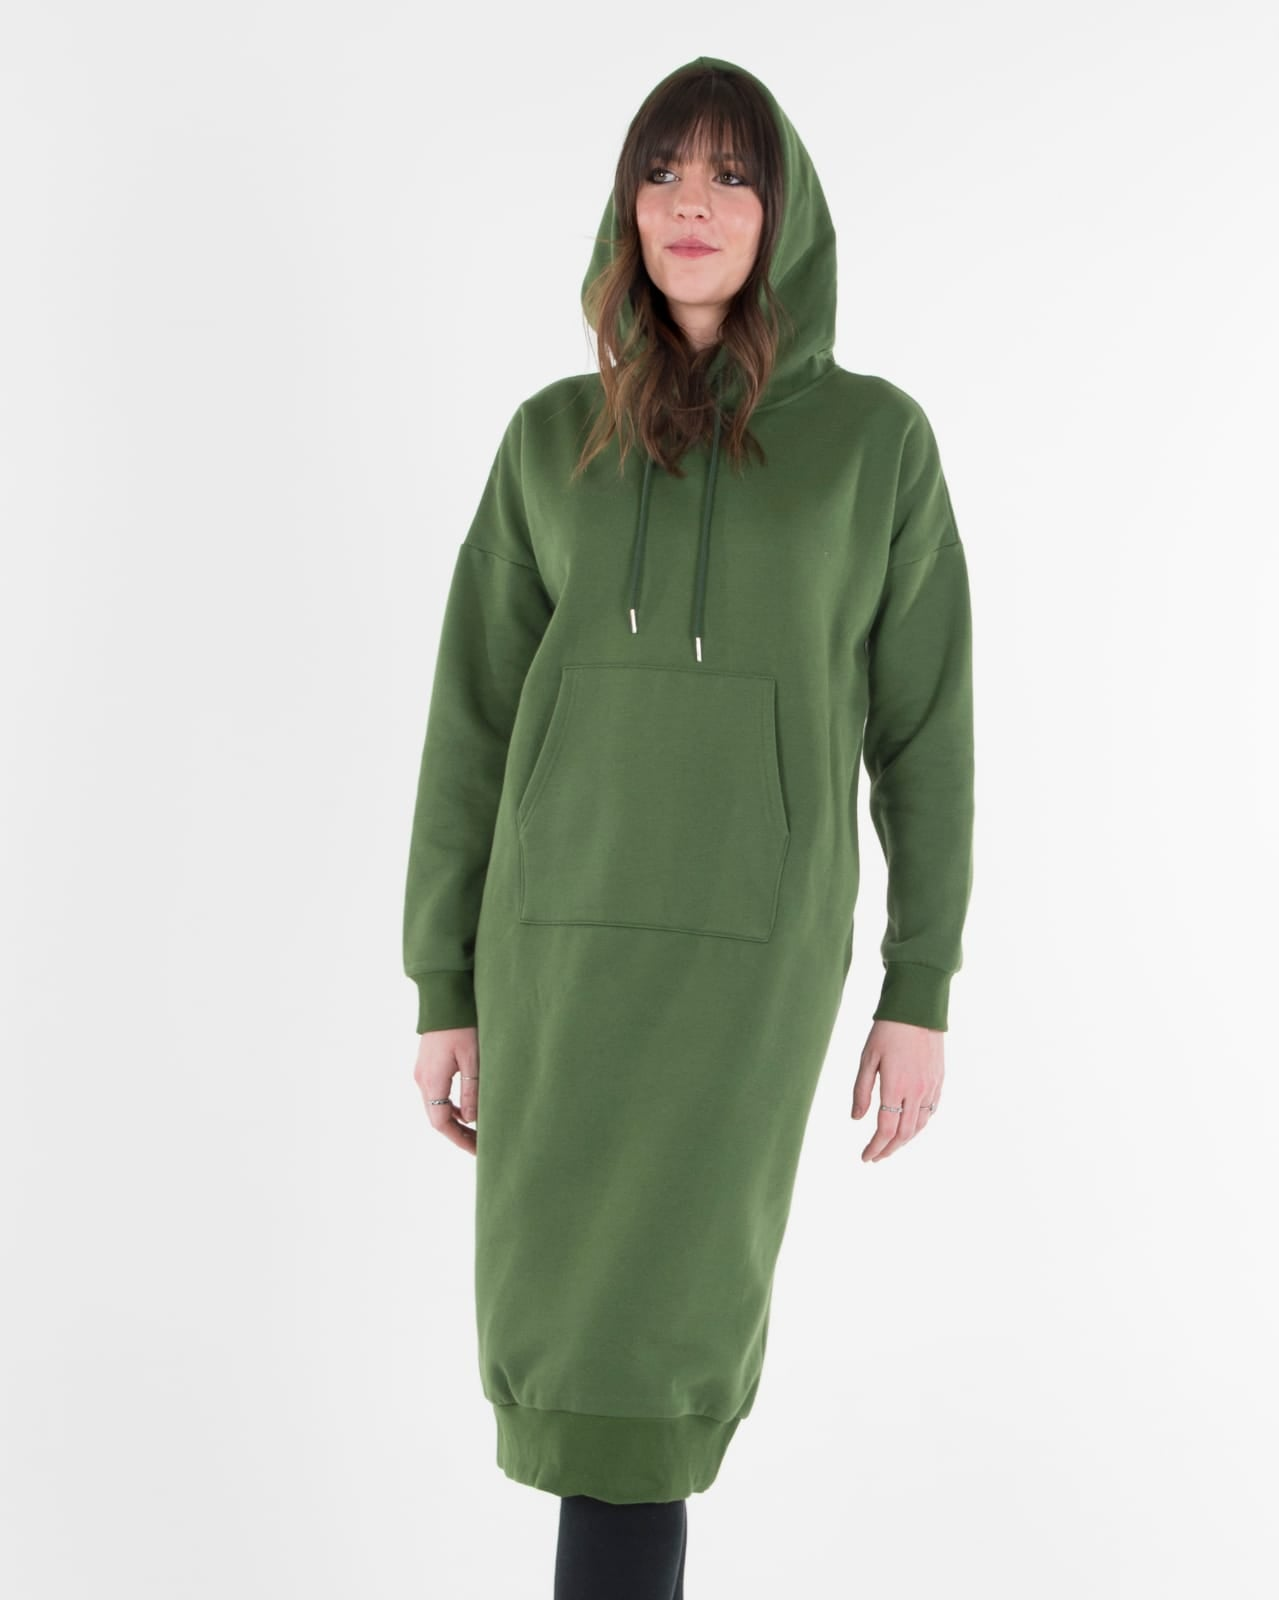 women's green sweatshirt dress with pockets and nursing zippers Cheap Affordable Modest Dress Clothing